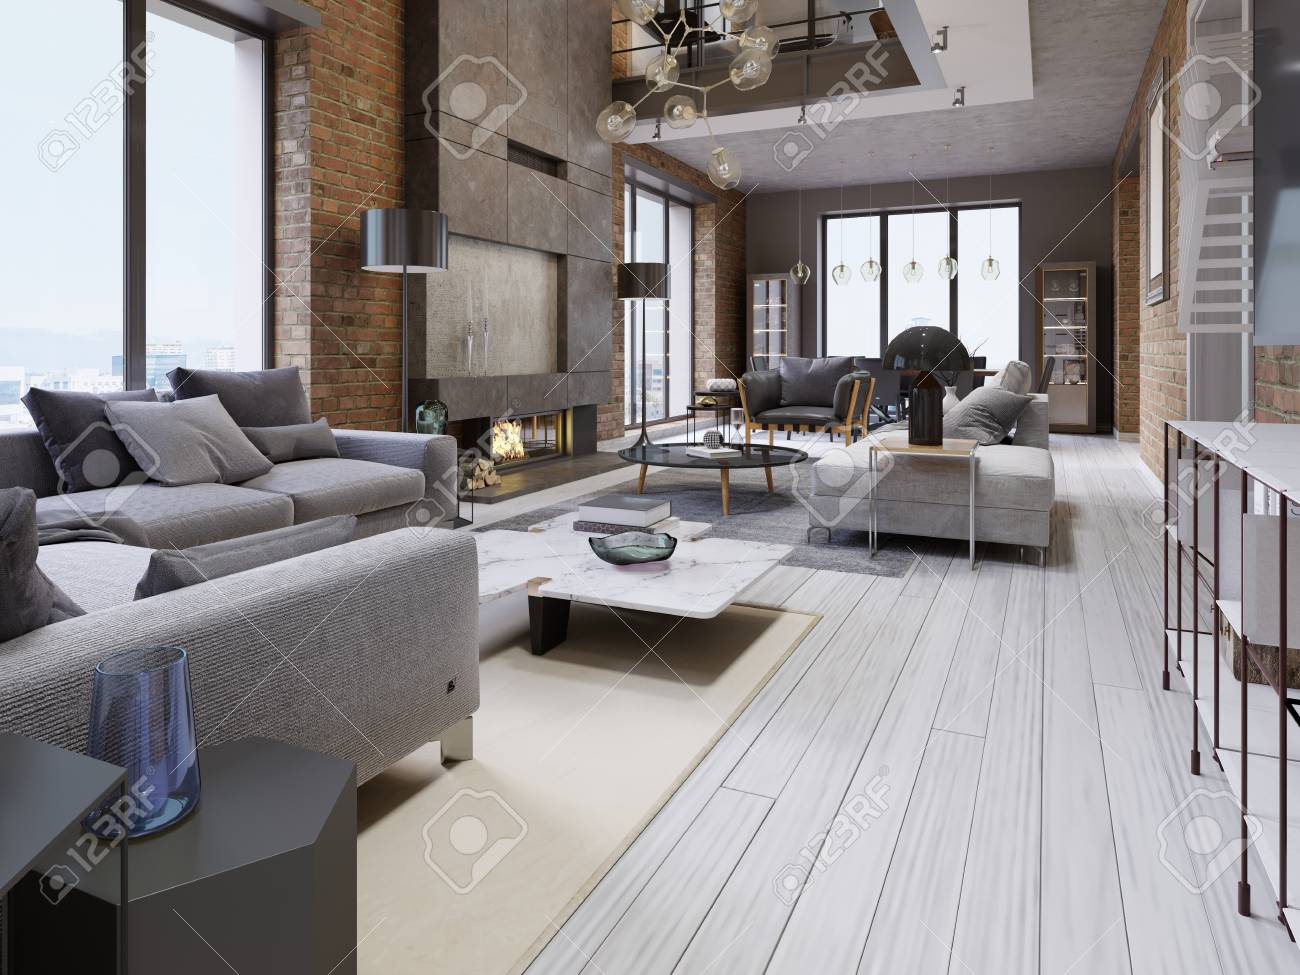 Great design of apartments in a loft style with a brick wall..